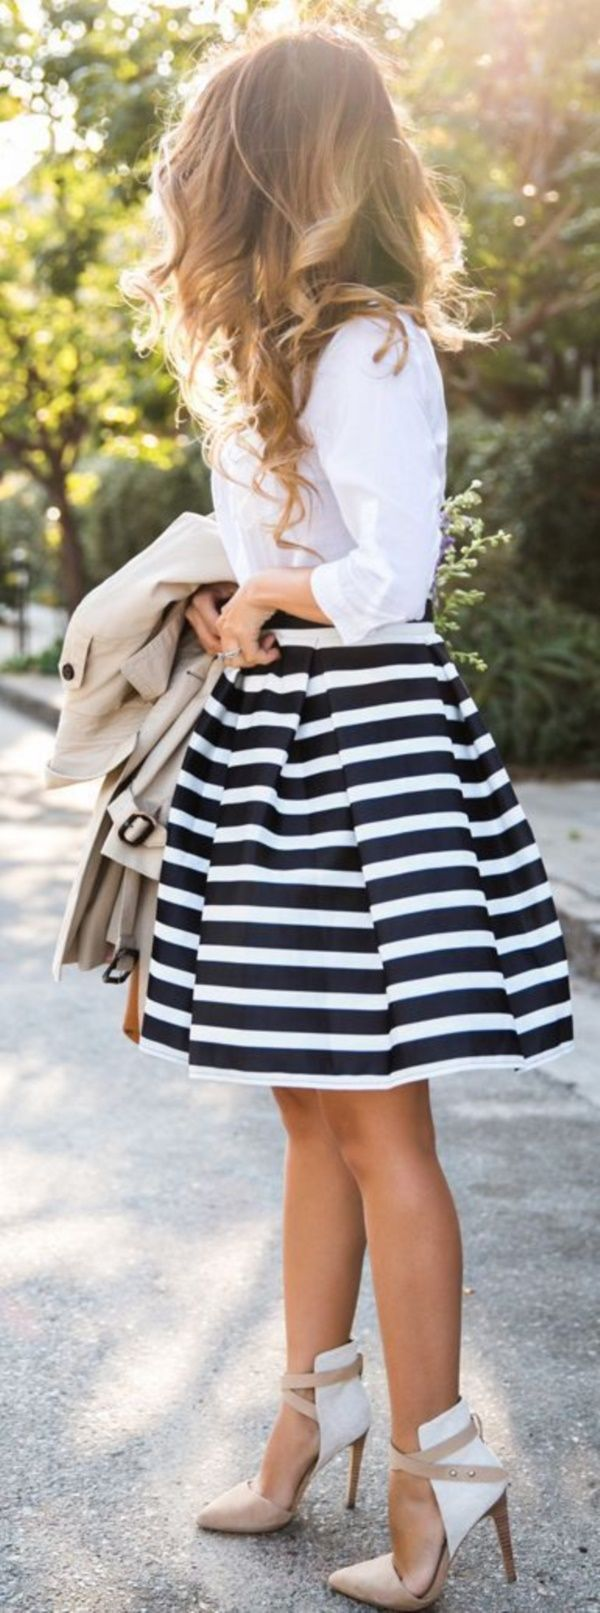 White And Black Skirt 51